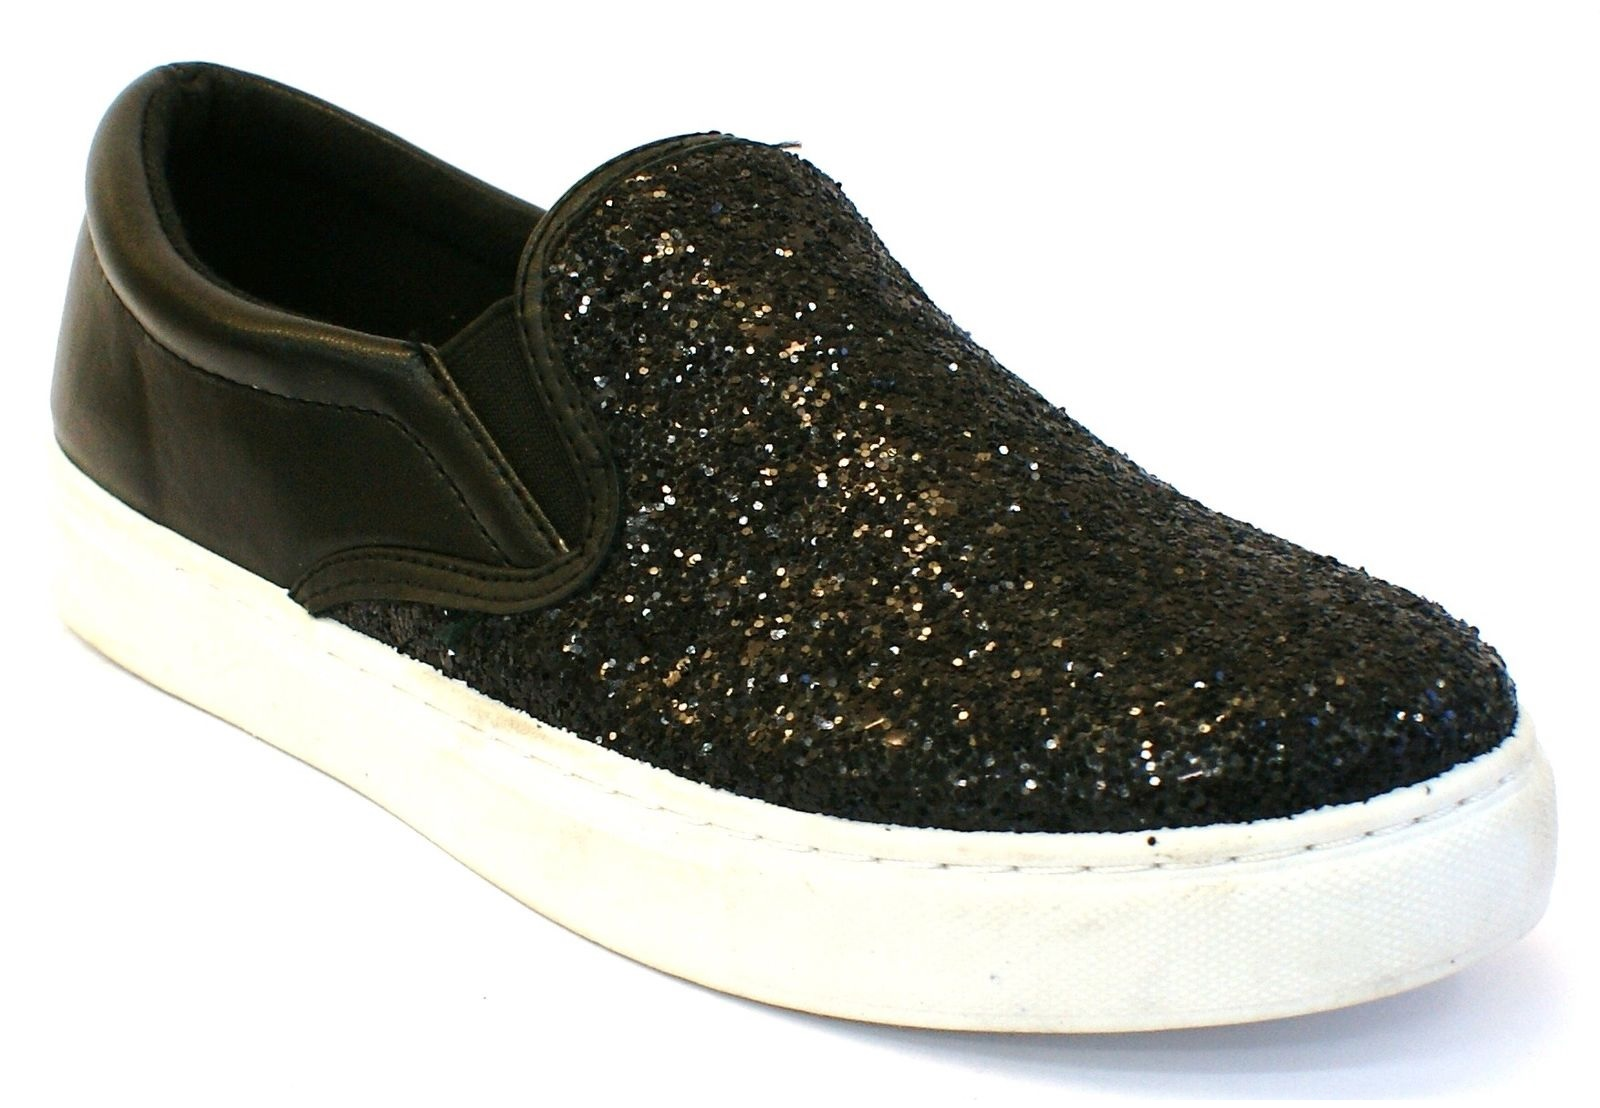 LADIES-WOMENS-FLAT-SLIP-ON-GLITTER-SPARKLY-PLIMSOLES-PUMPS-SKATER-TRAINERS-SHOES